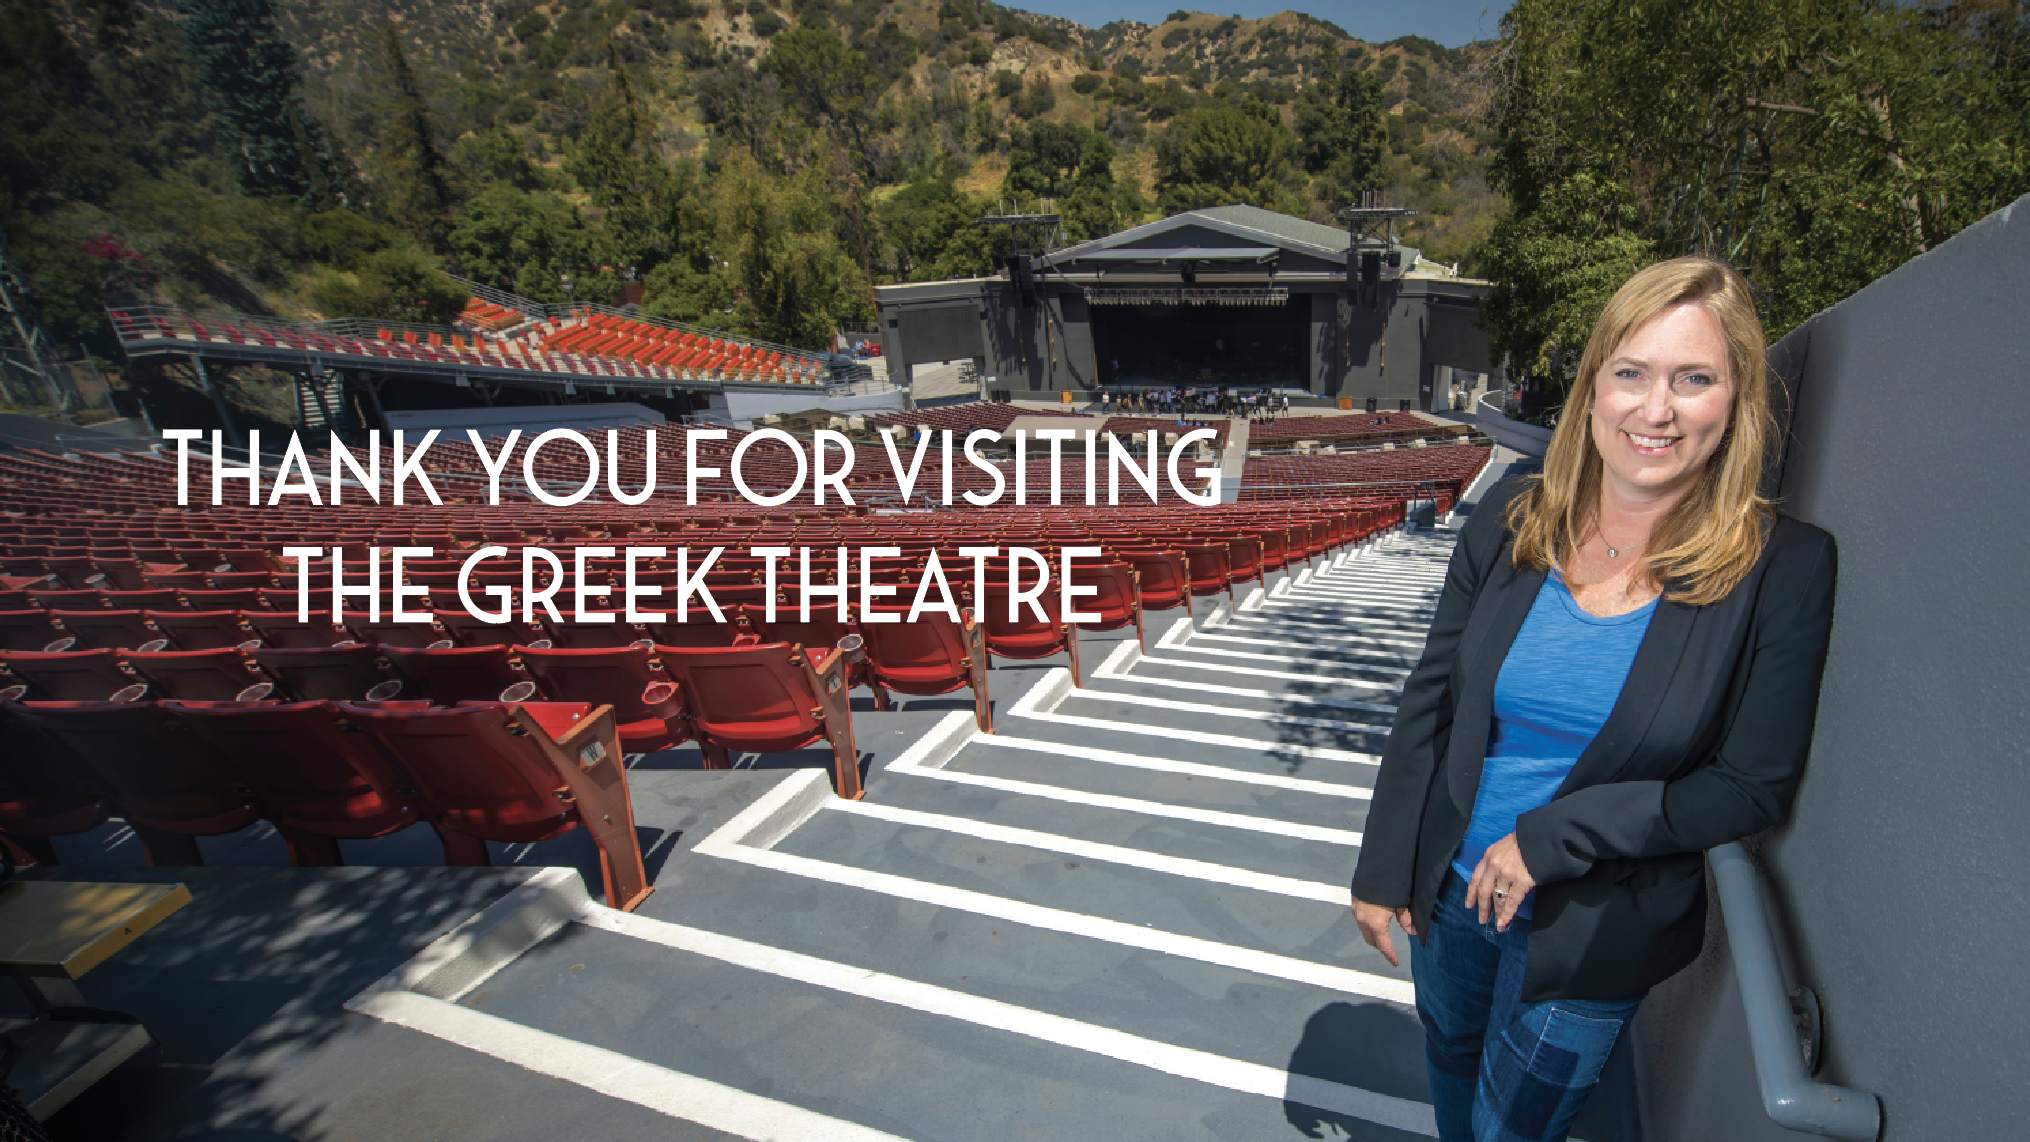 Becky Colwell in The Greek Theatre; Thank you for visiting the Greek Theatre